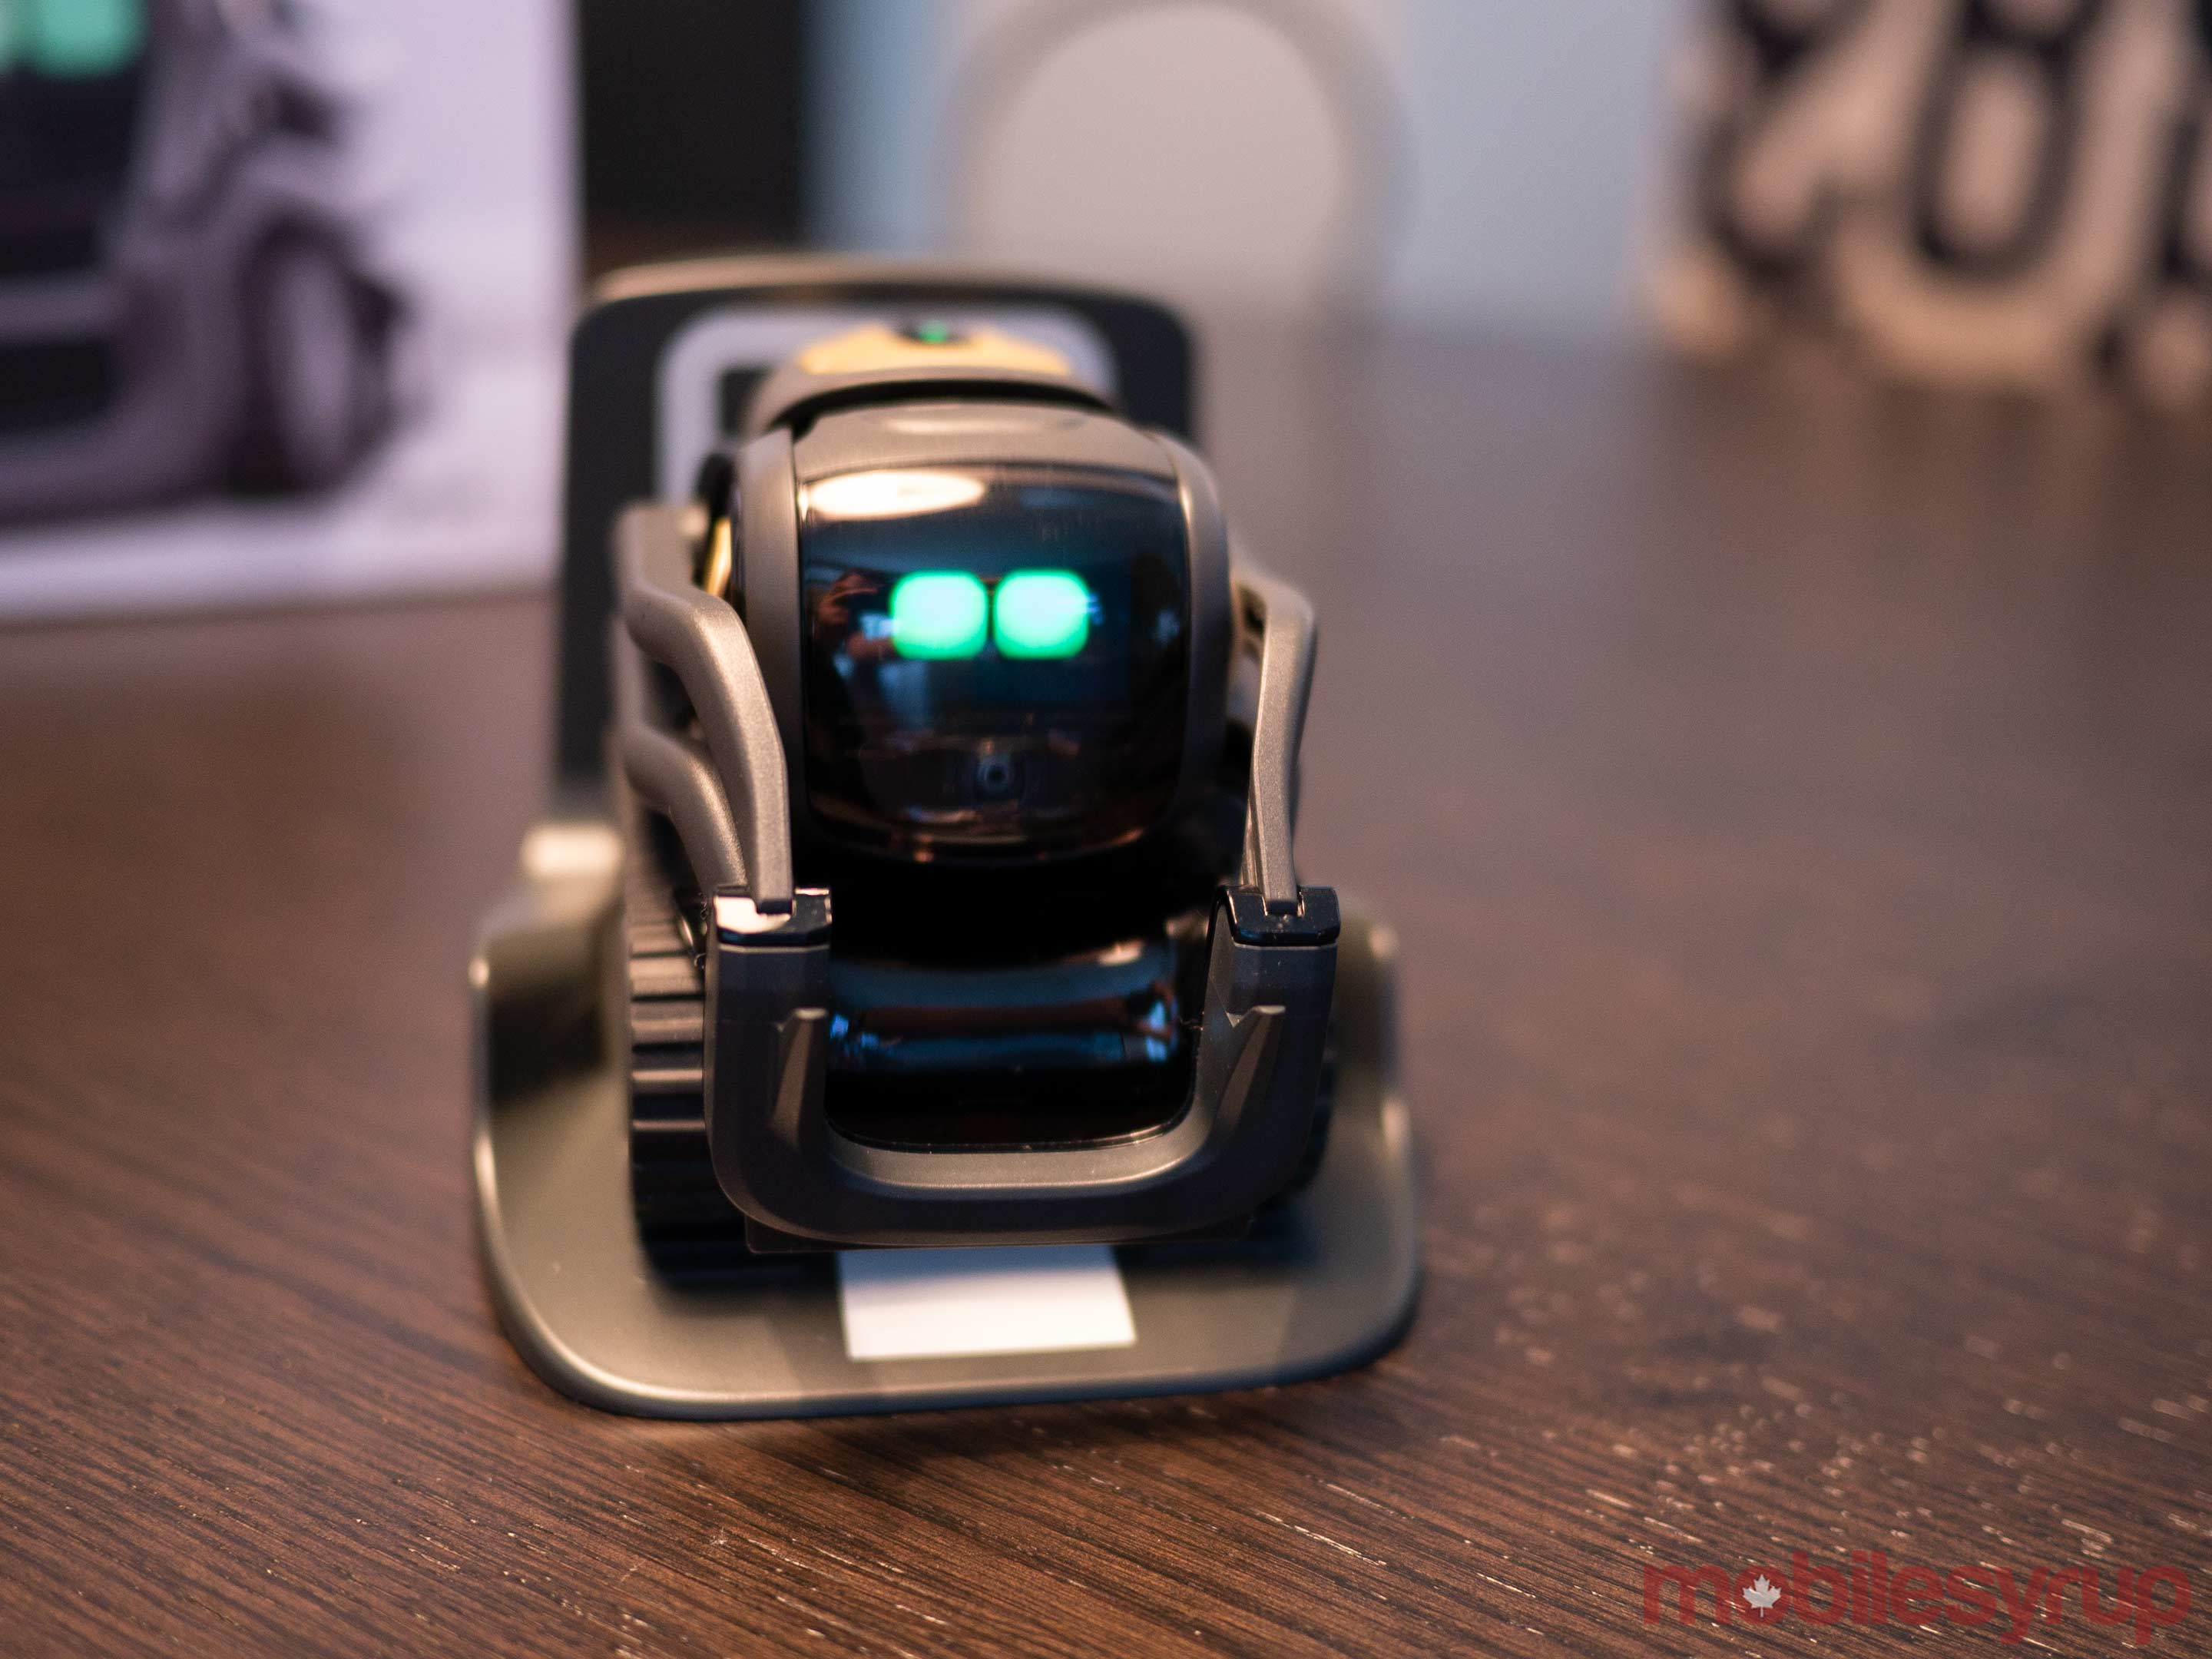 ankis new vector robot just wants to hang out with you